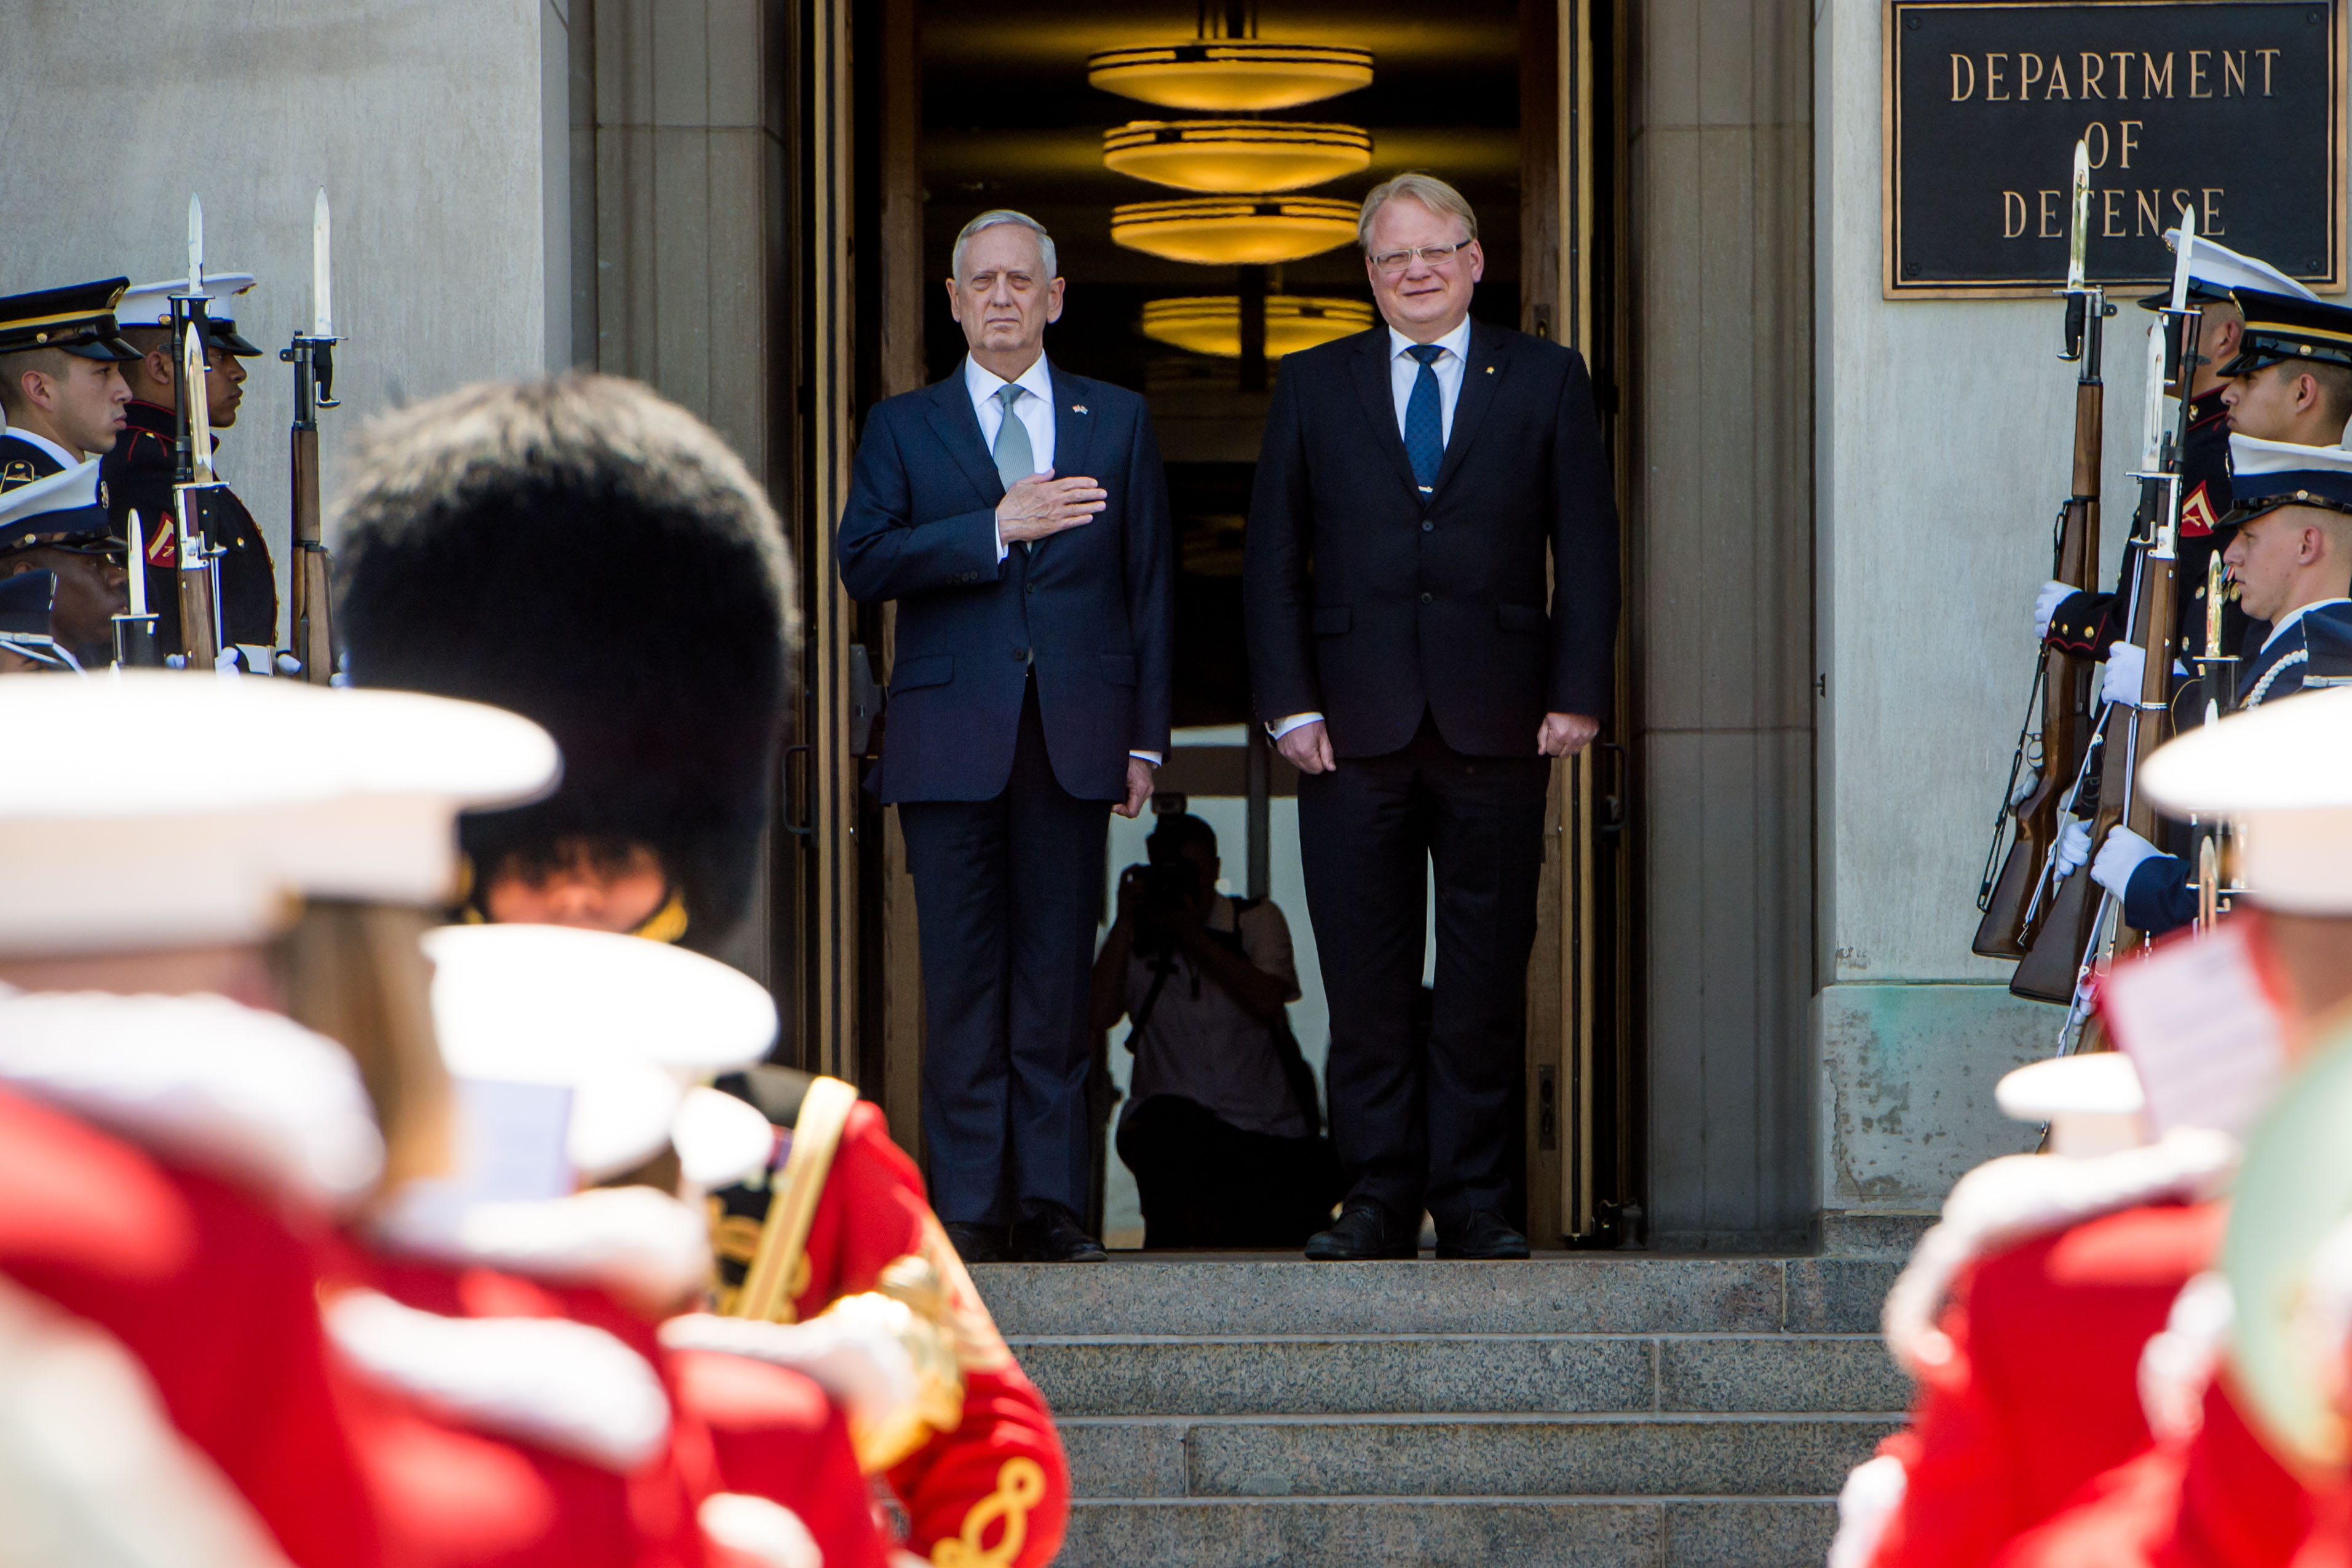 U.S. Defense Secretary Mattis together with Minister for Defence Peter Hultqvist